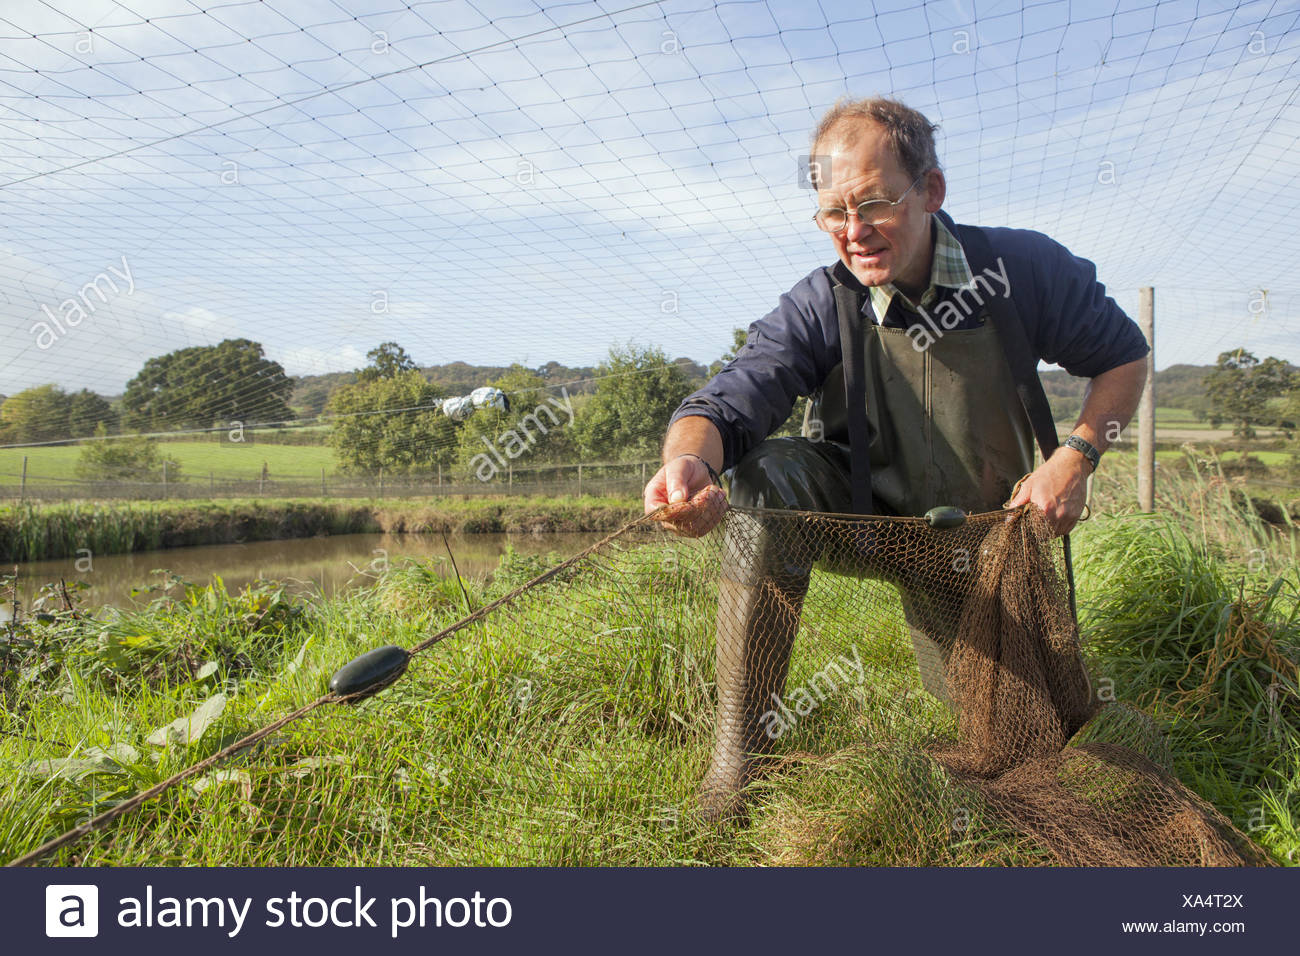 A man handling a large net, pulling it across water.  Netting young carp. A managed carp fishery. - Stock Image